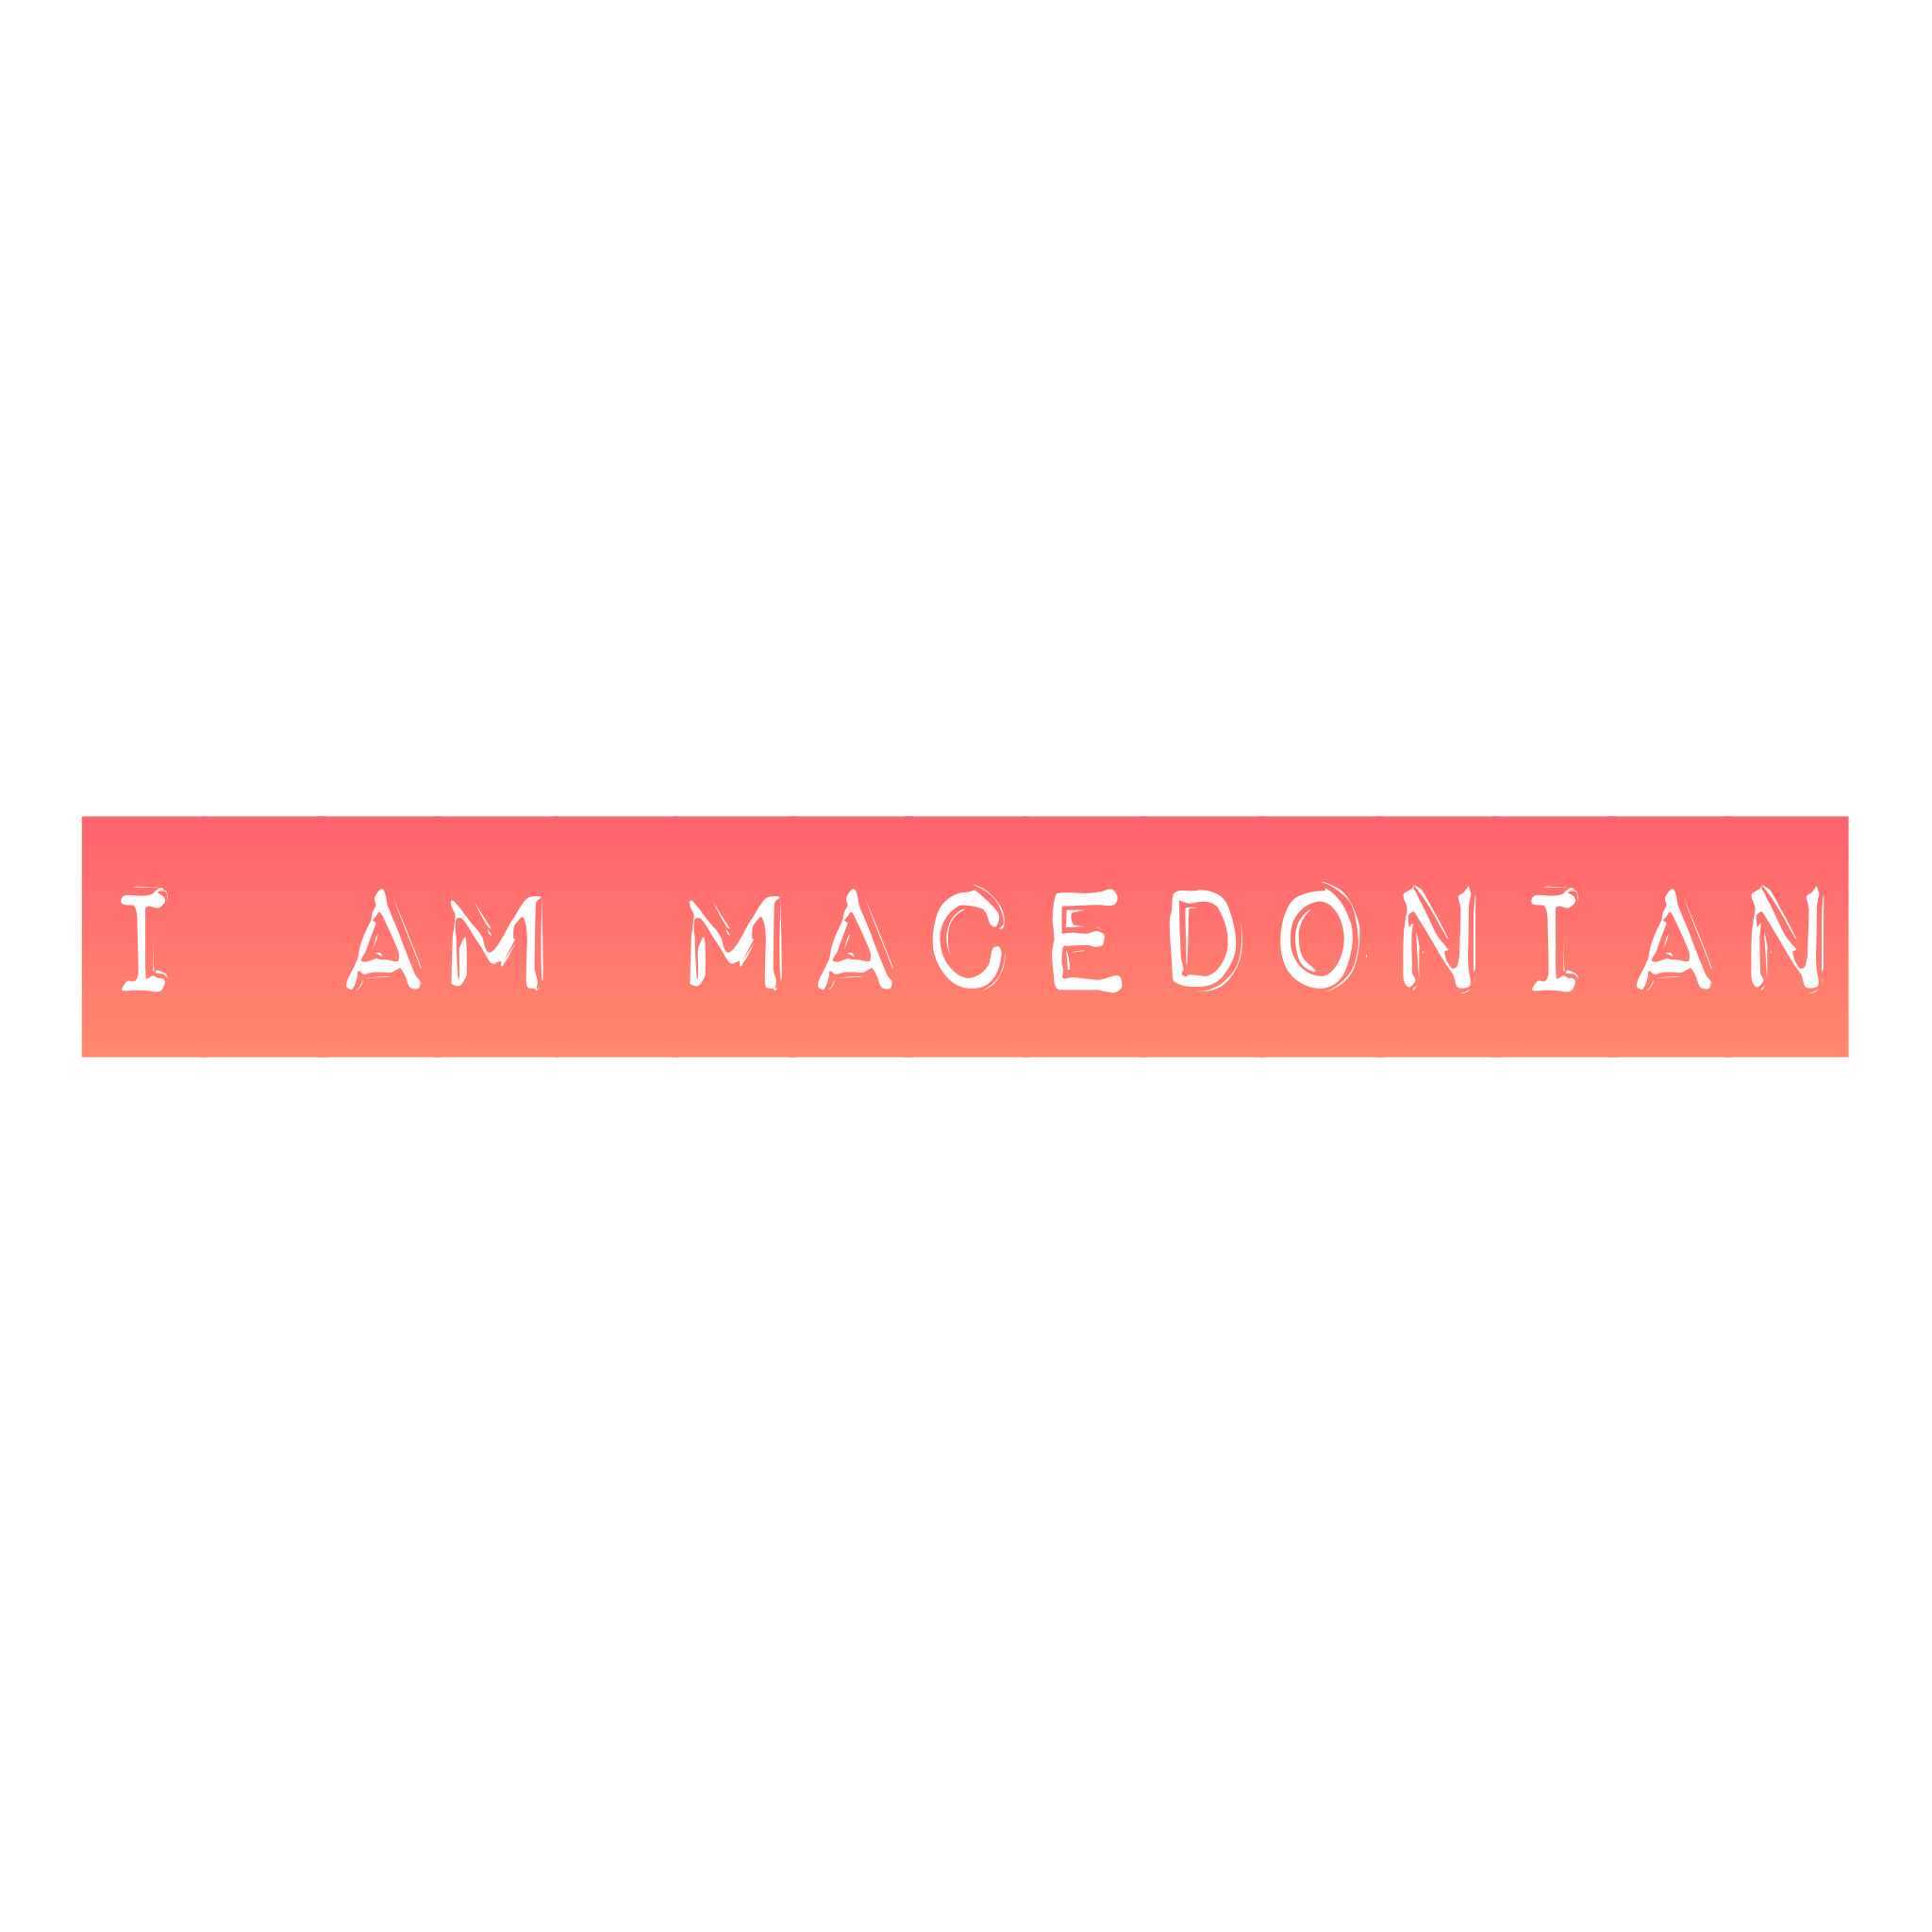 I am Macedonian